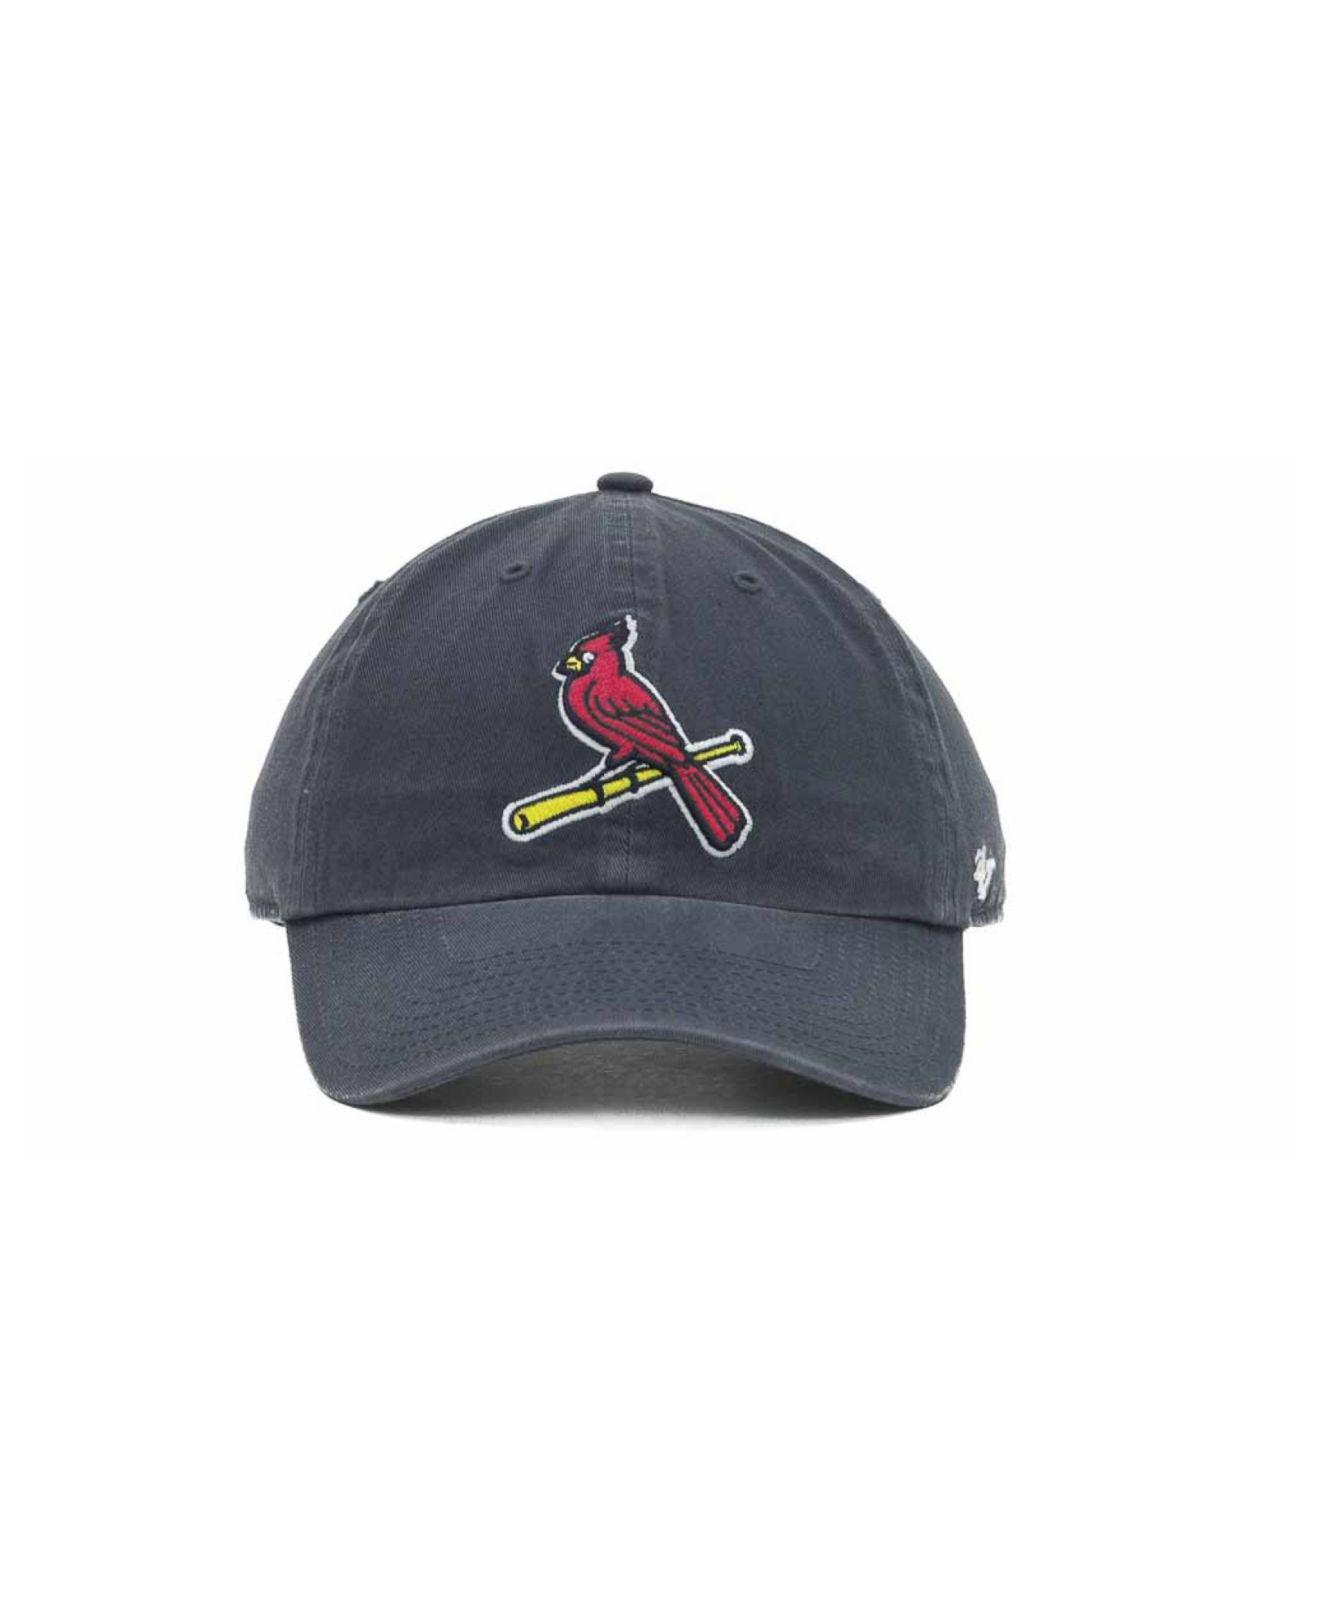 newest 80cd4 5b958 ... canada lyst 47 brand st. louis cardinals clean up hat in blue for men  7d2f6